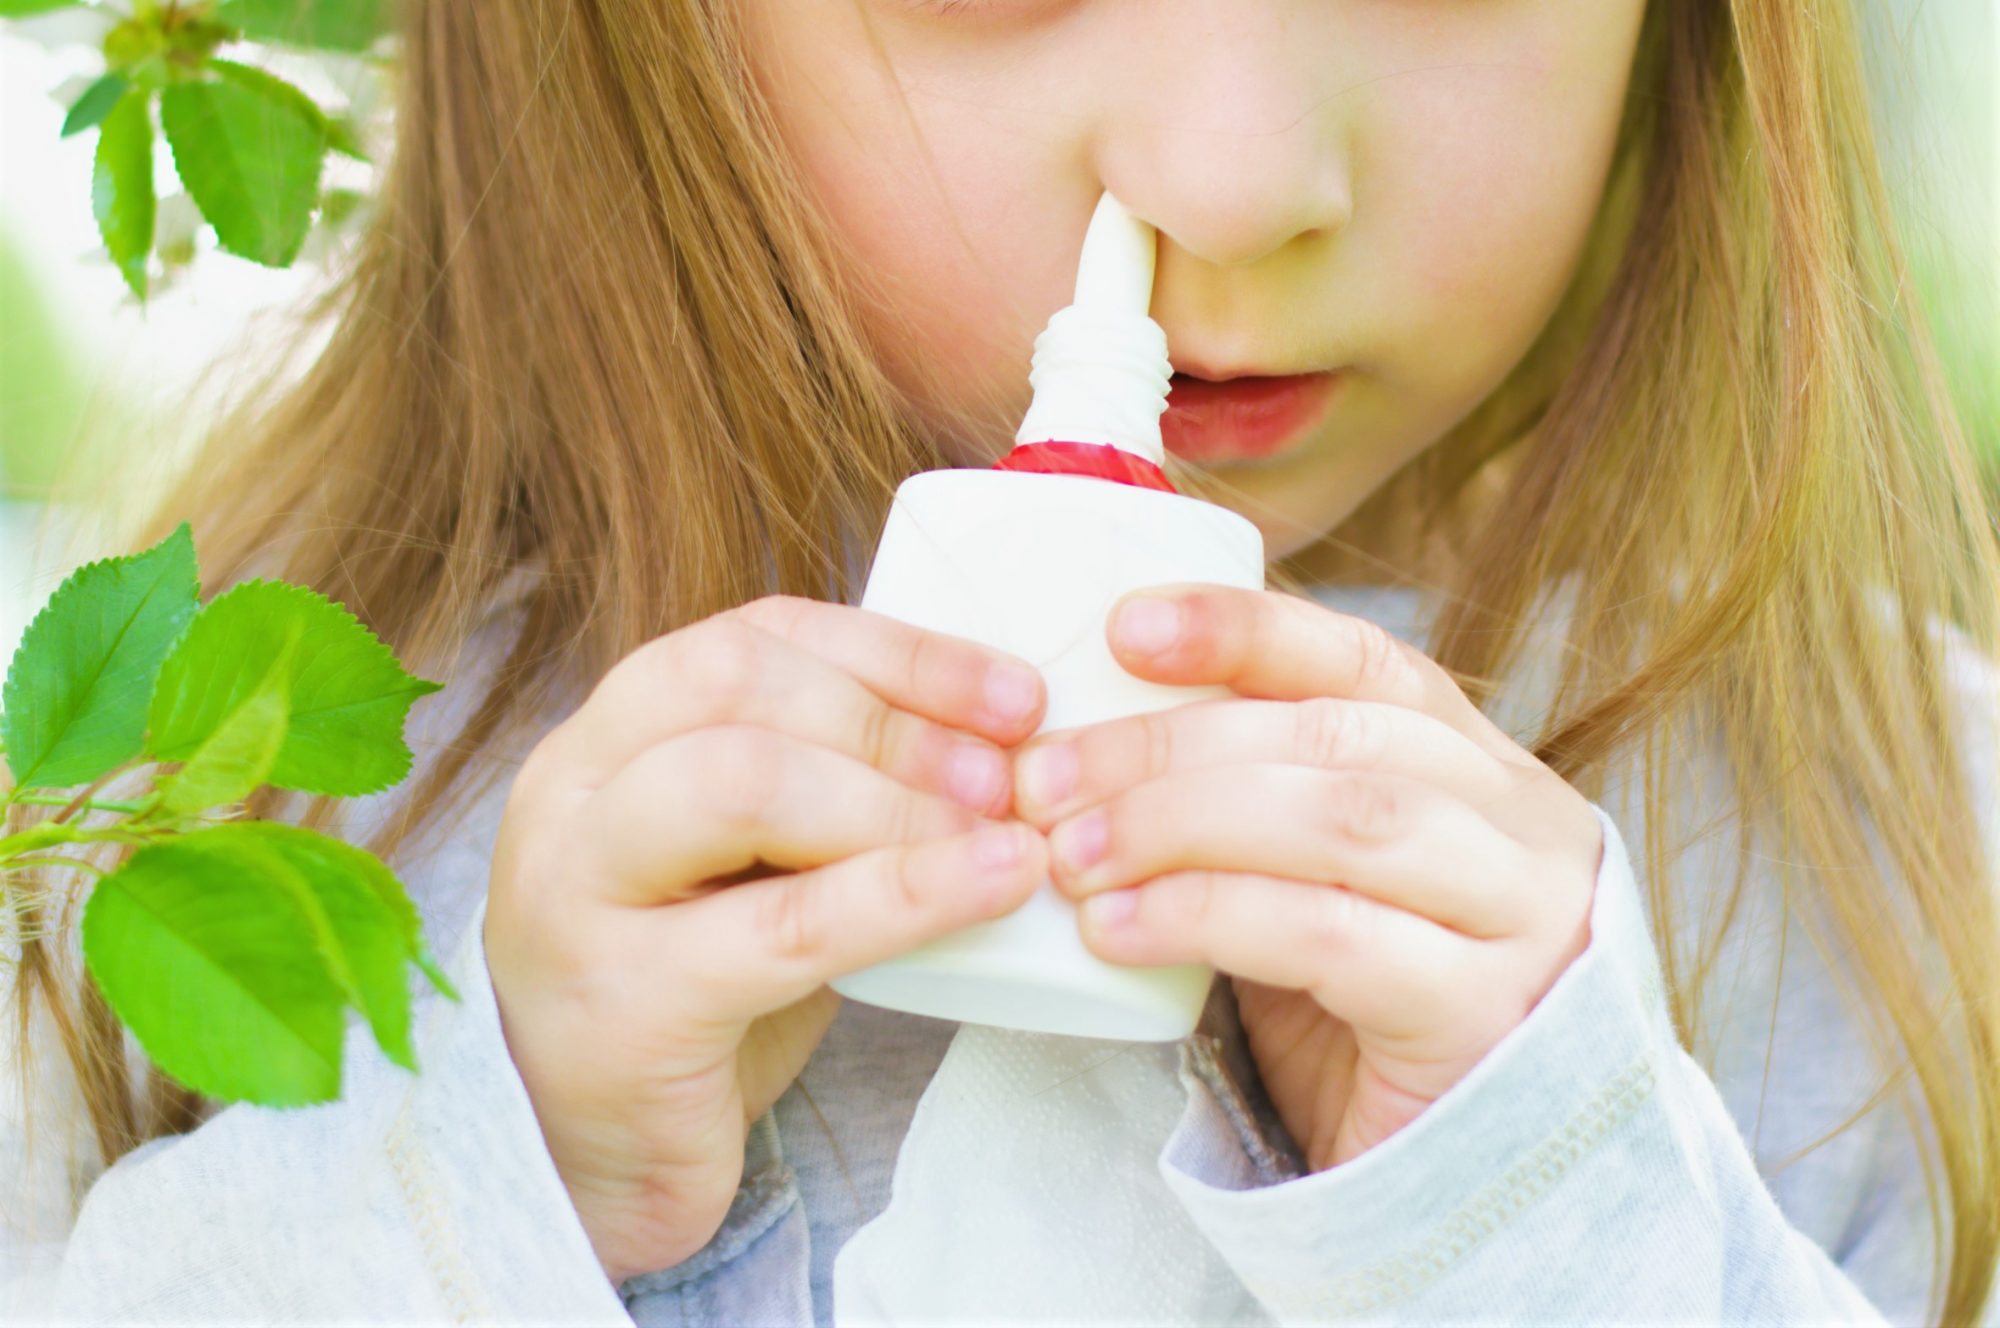 Little girl spraying nasal spray in nose